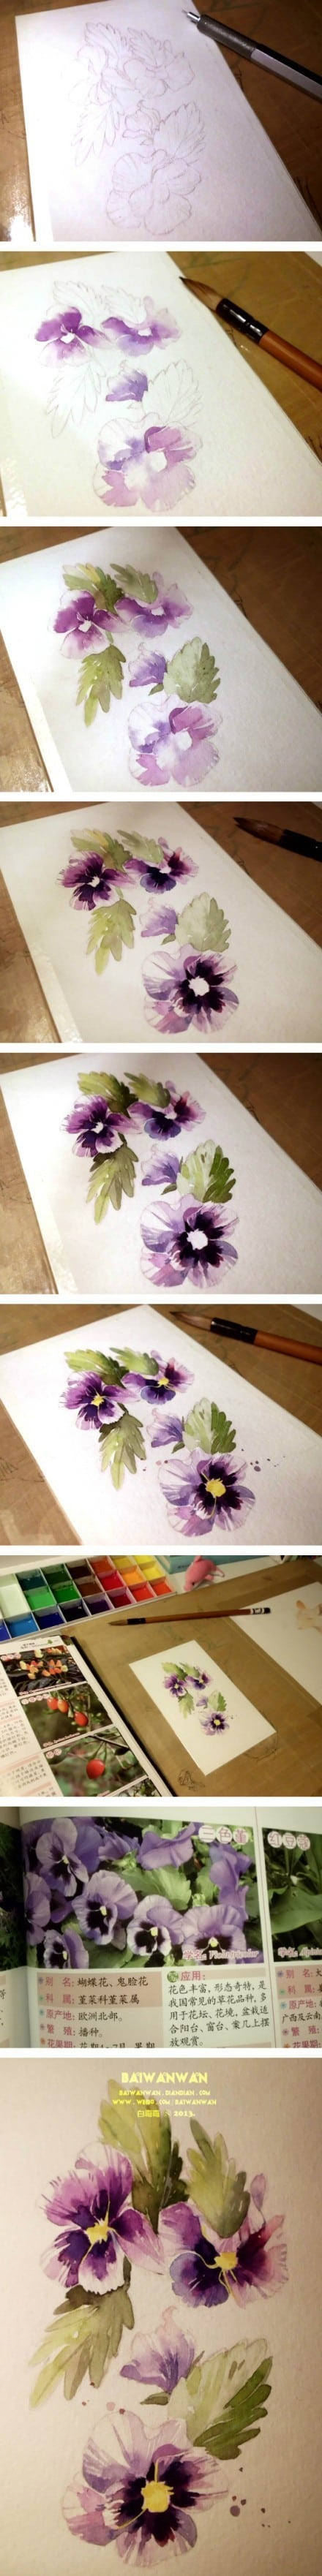 15. START YOUR PAINTING BY ATTACHING THE WATERCOLOR PAPER ON A WOODEN BOARD